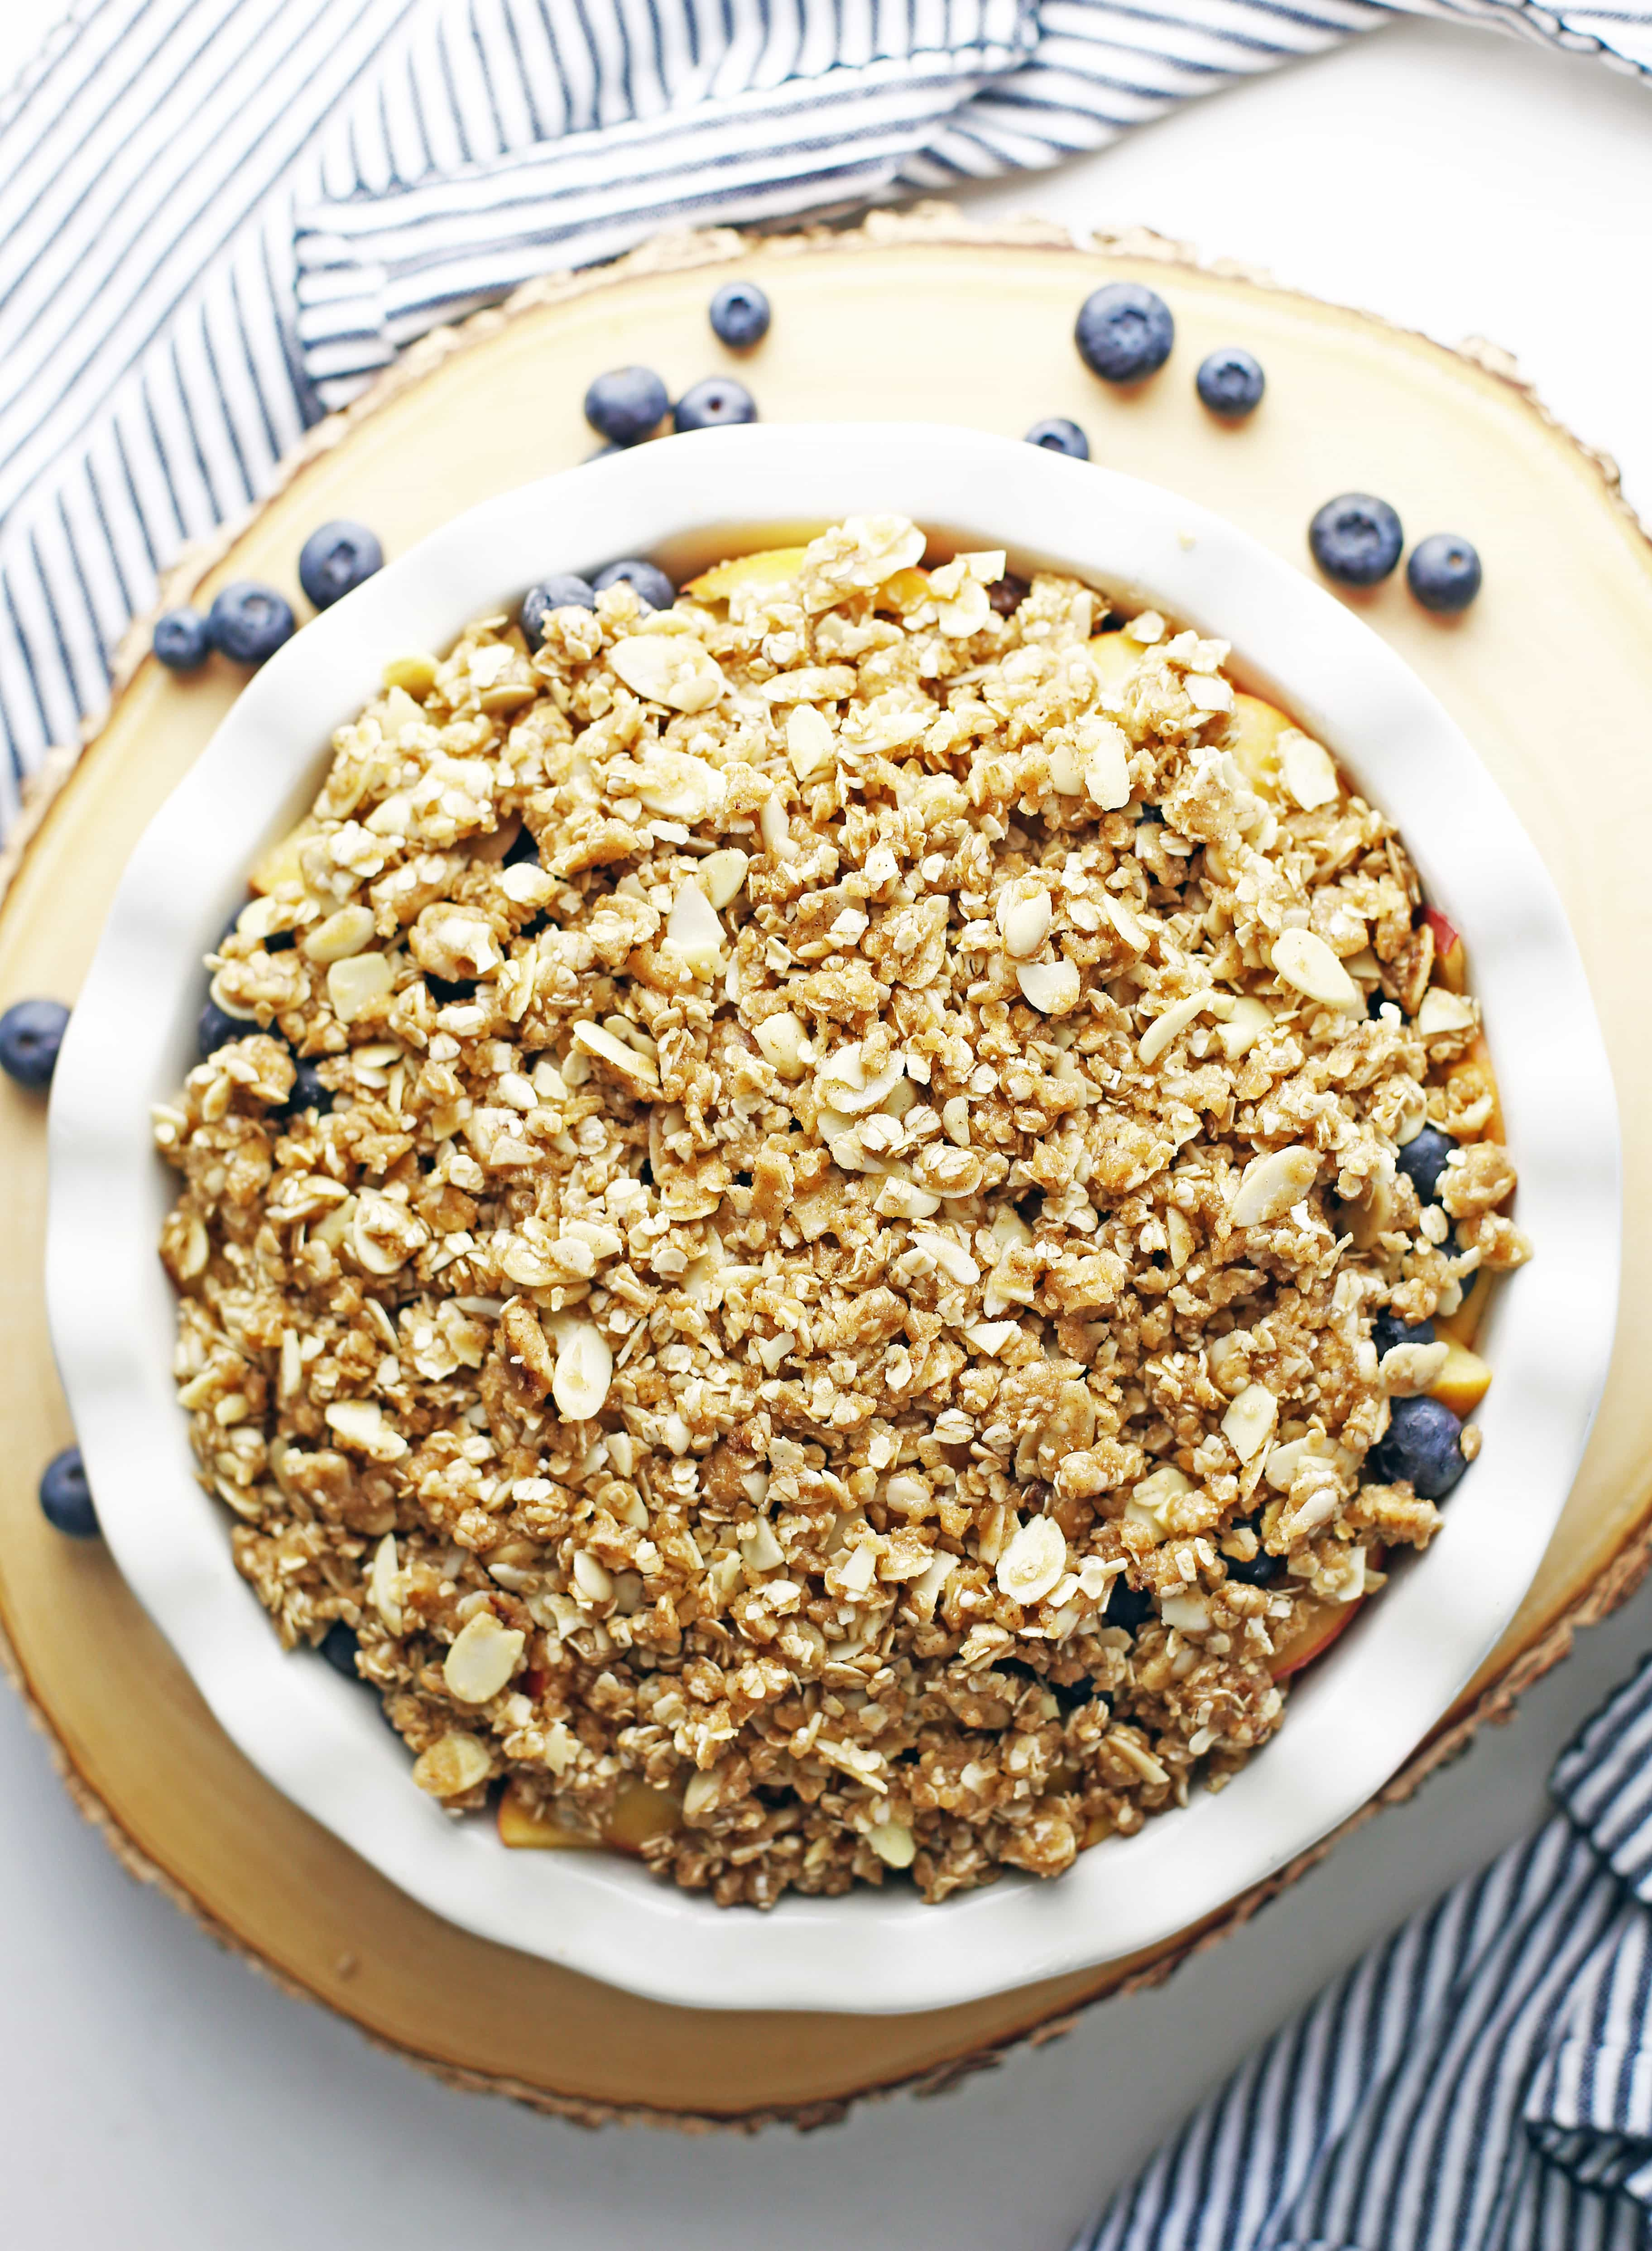 Unbaked peach blueberry crisp with almond oat topping in a round ceramic pie dish.